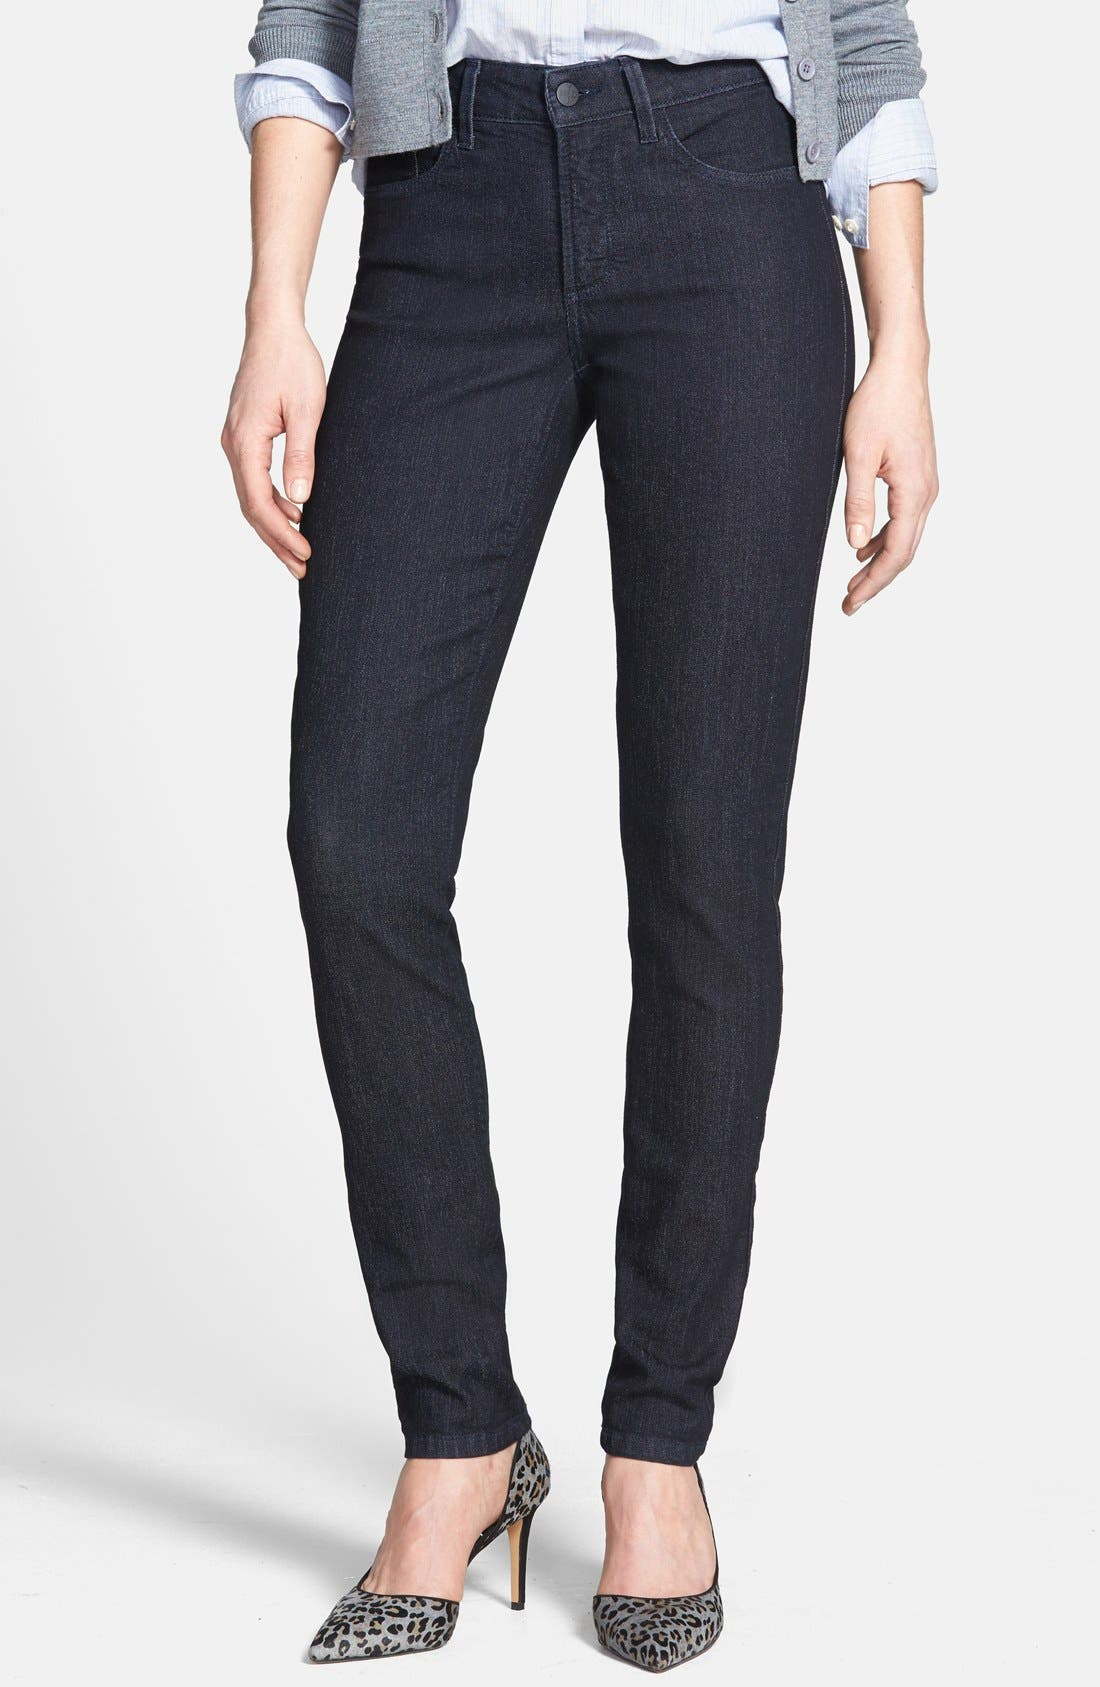 Main Image - NYDJ 'Ami' Stretch Super Skinny Jeans (Irving) (Online Only)